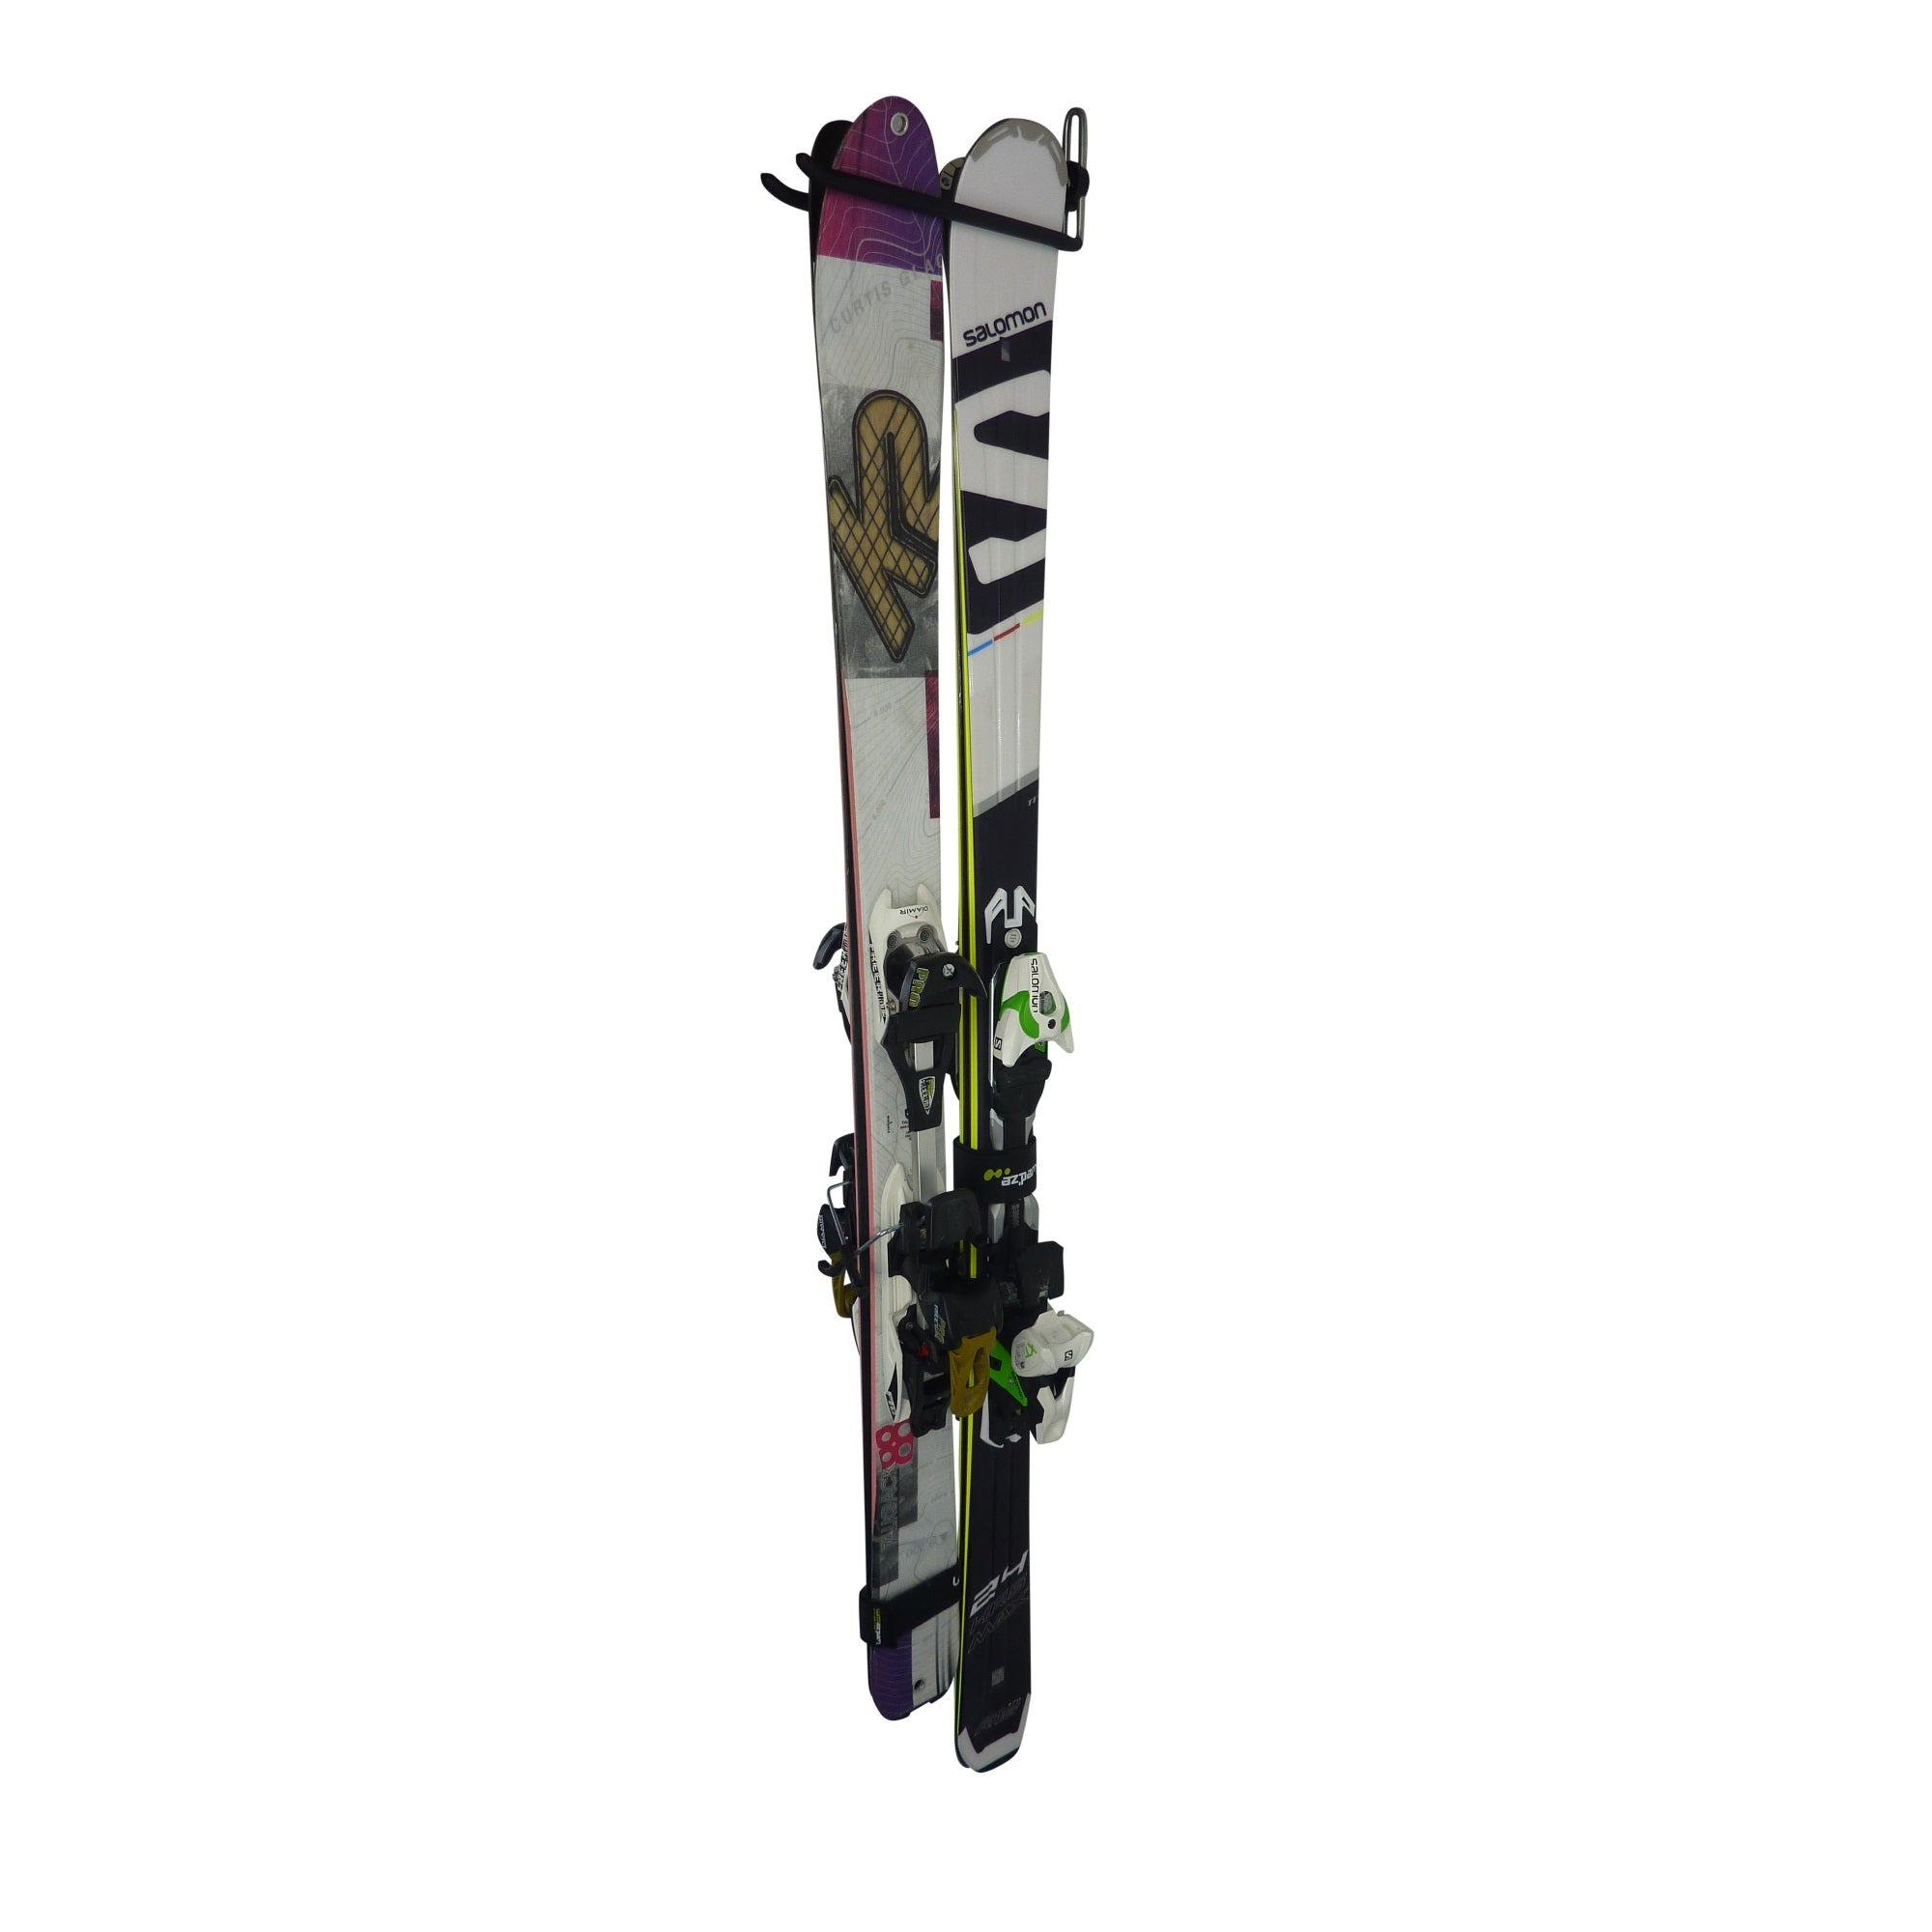 Ski wall mount - ski storage hook for 2 pairs of skis. GearHooks SH2